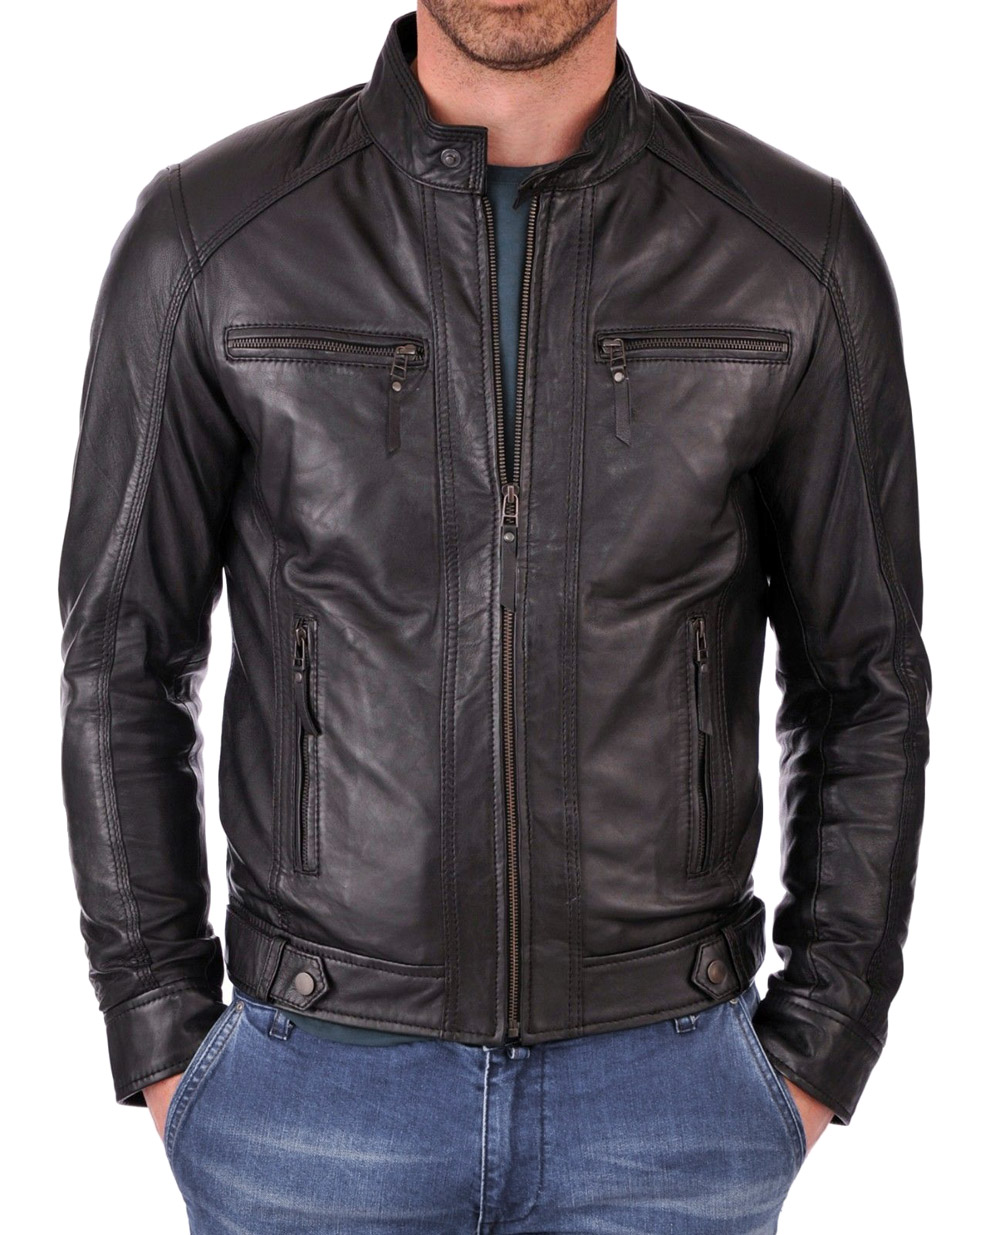 8599887f6 New Men's Genuine Lambskin Leather Jacket Black Slim fit Biker Motorcycle  jacket